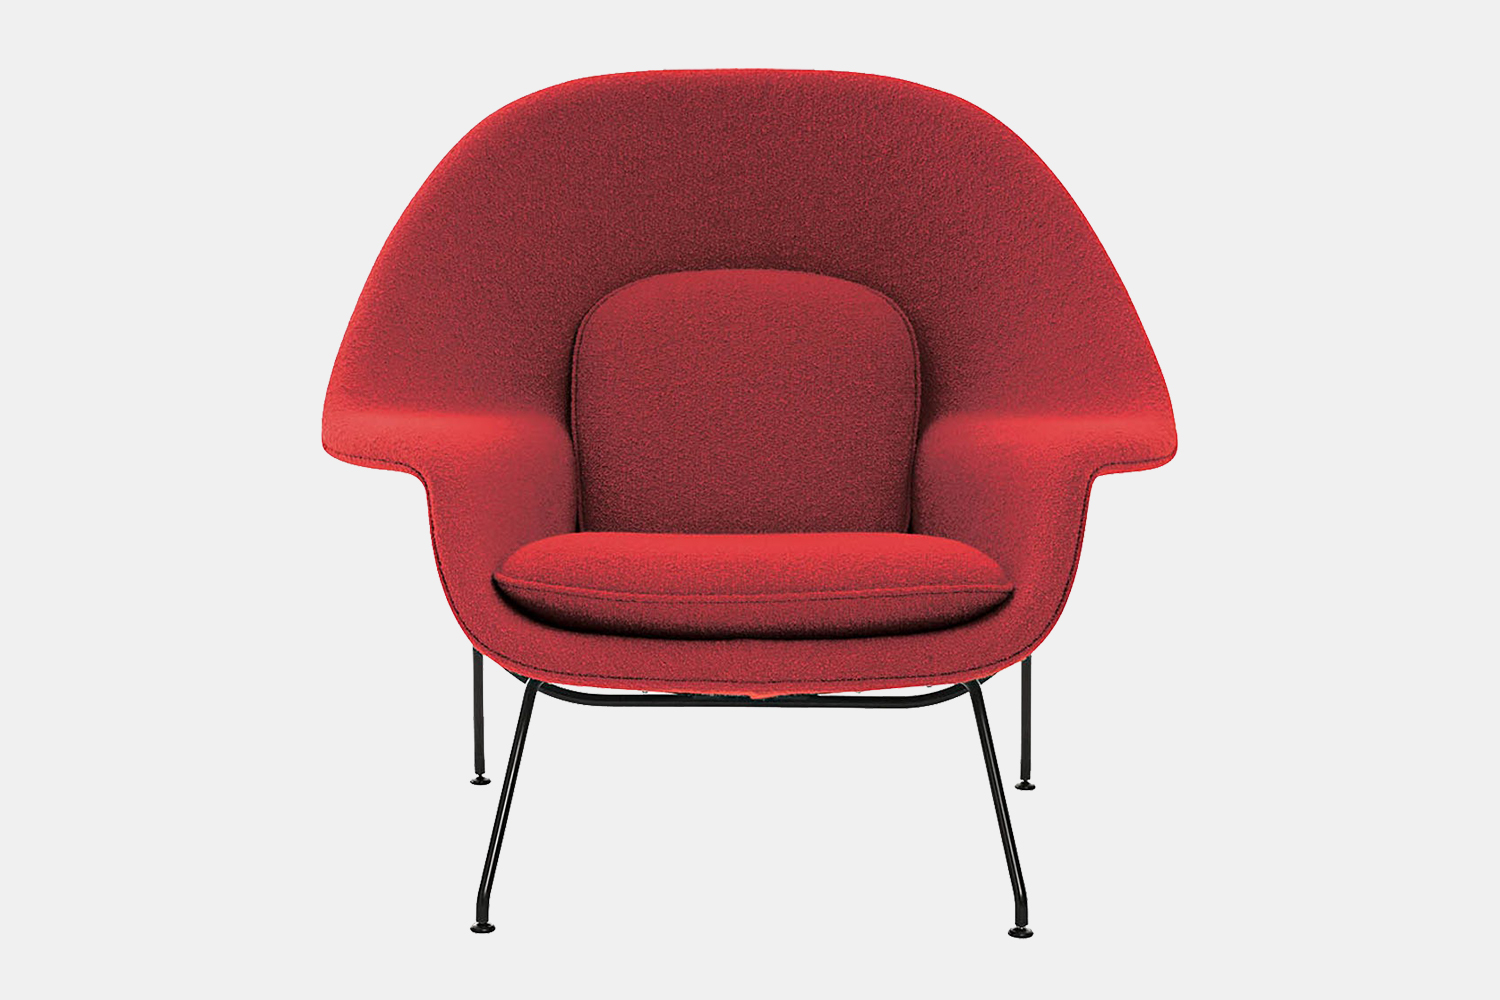 Red Womb Chair from Finnish-American designer Eero Saarinen